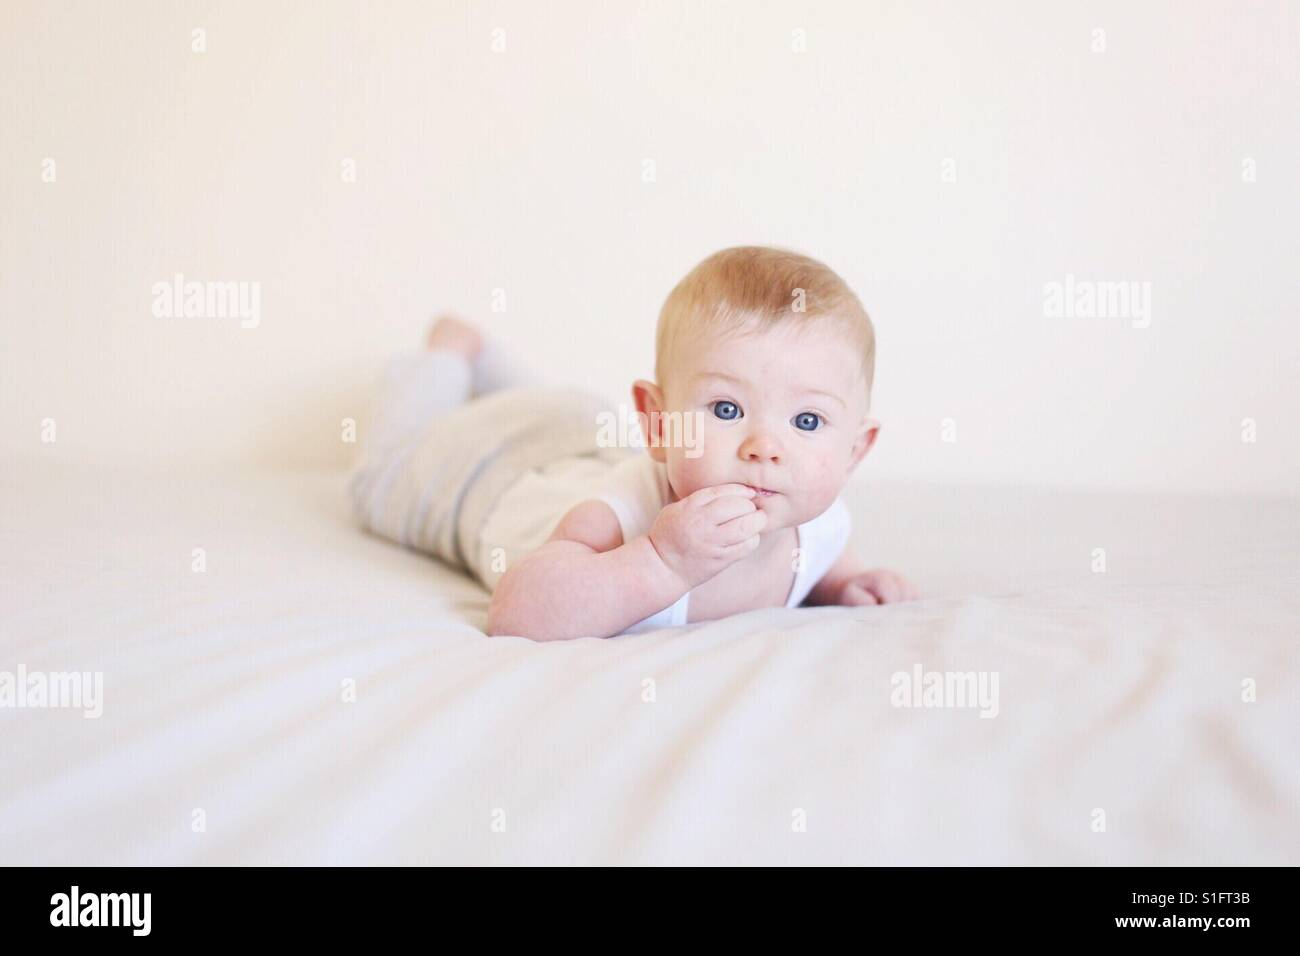 Baby boy laying on bed tummy time - Stock Image